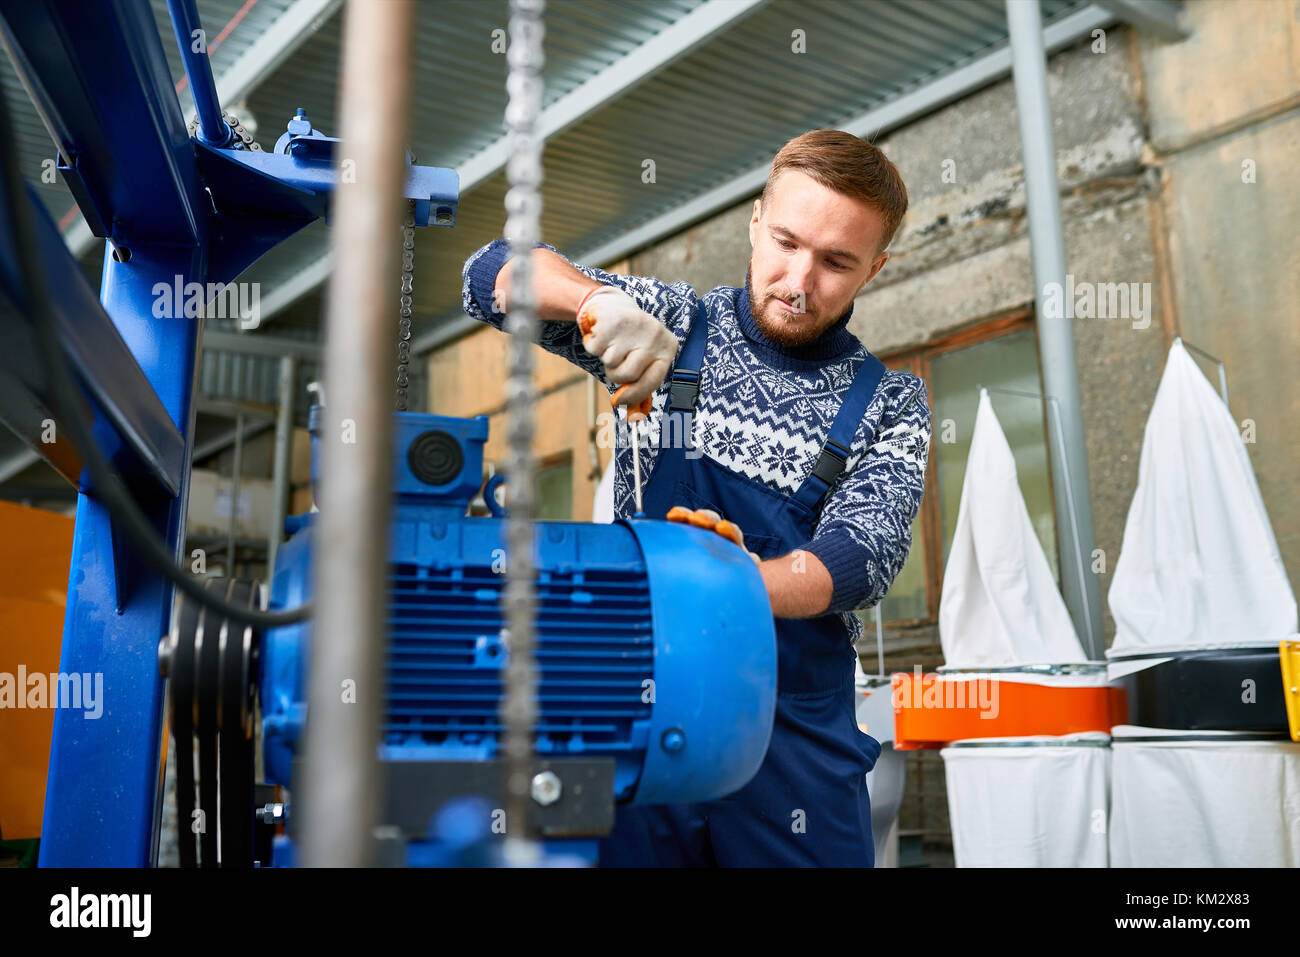 Man Repairing Machine Units at Factory - Stock Image